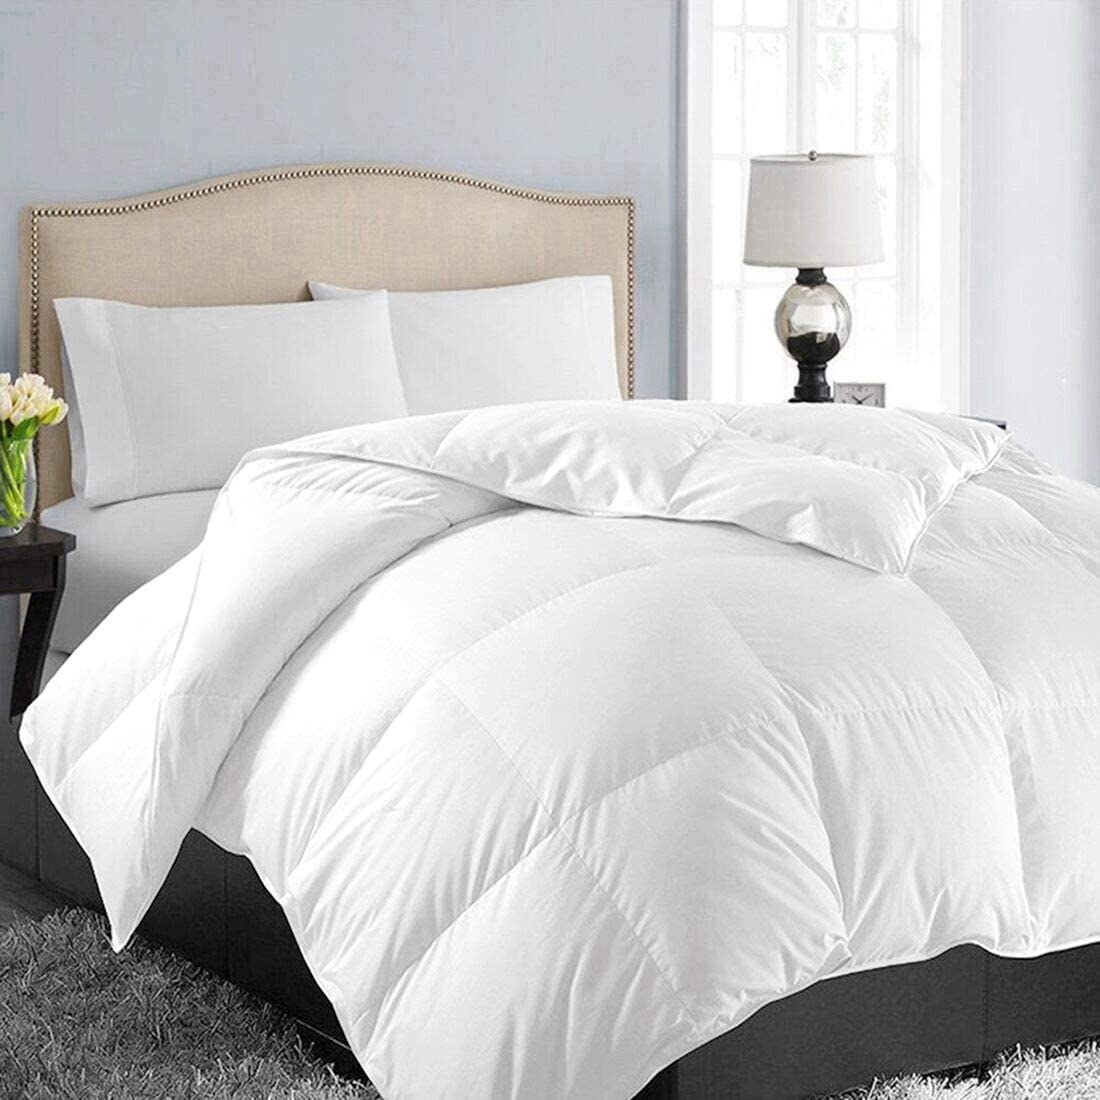 The white quilted duvet on a bed